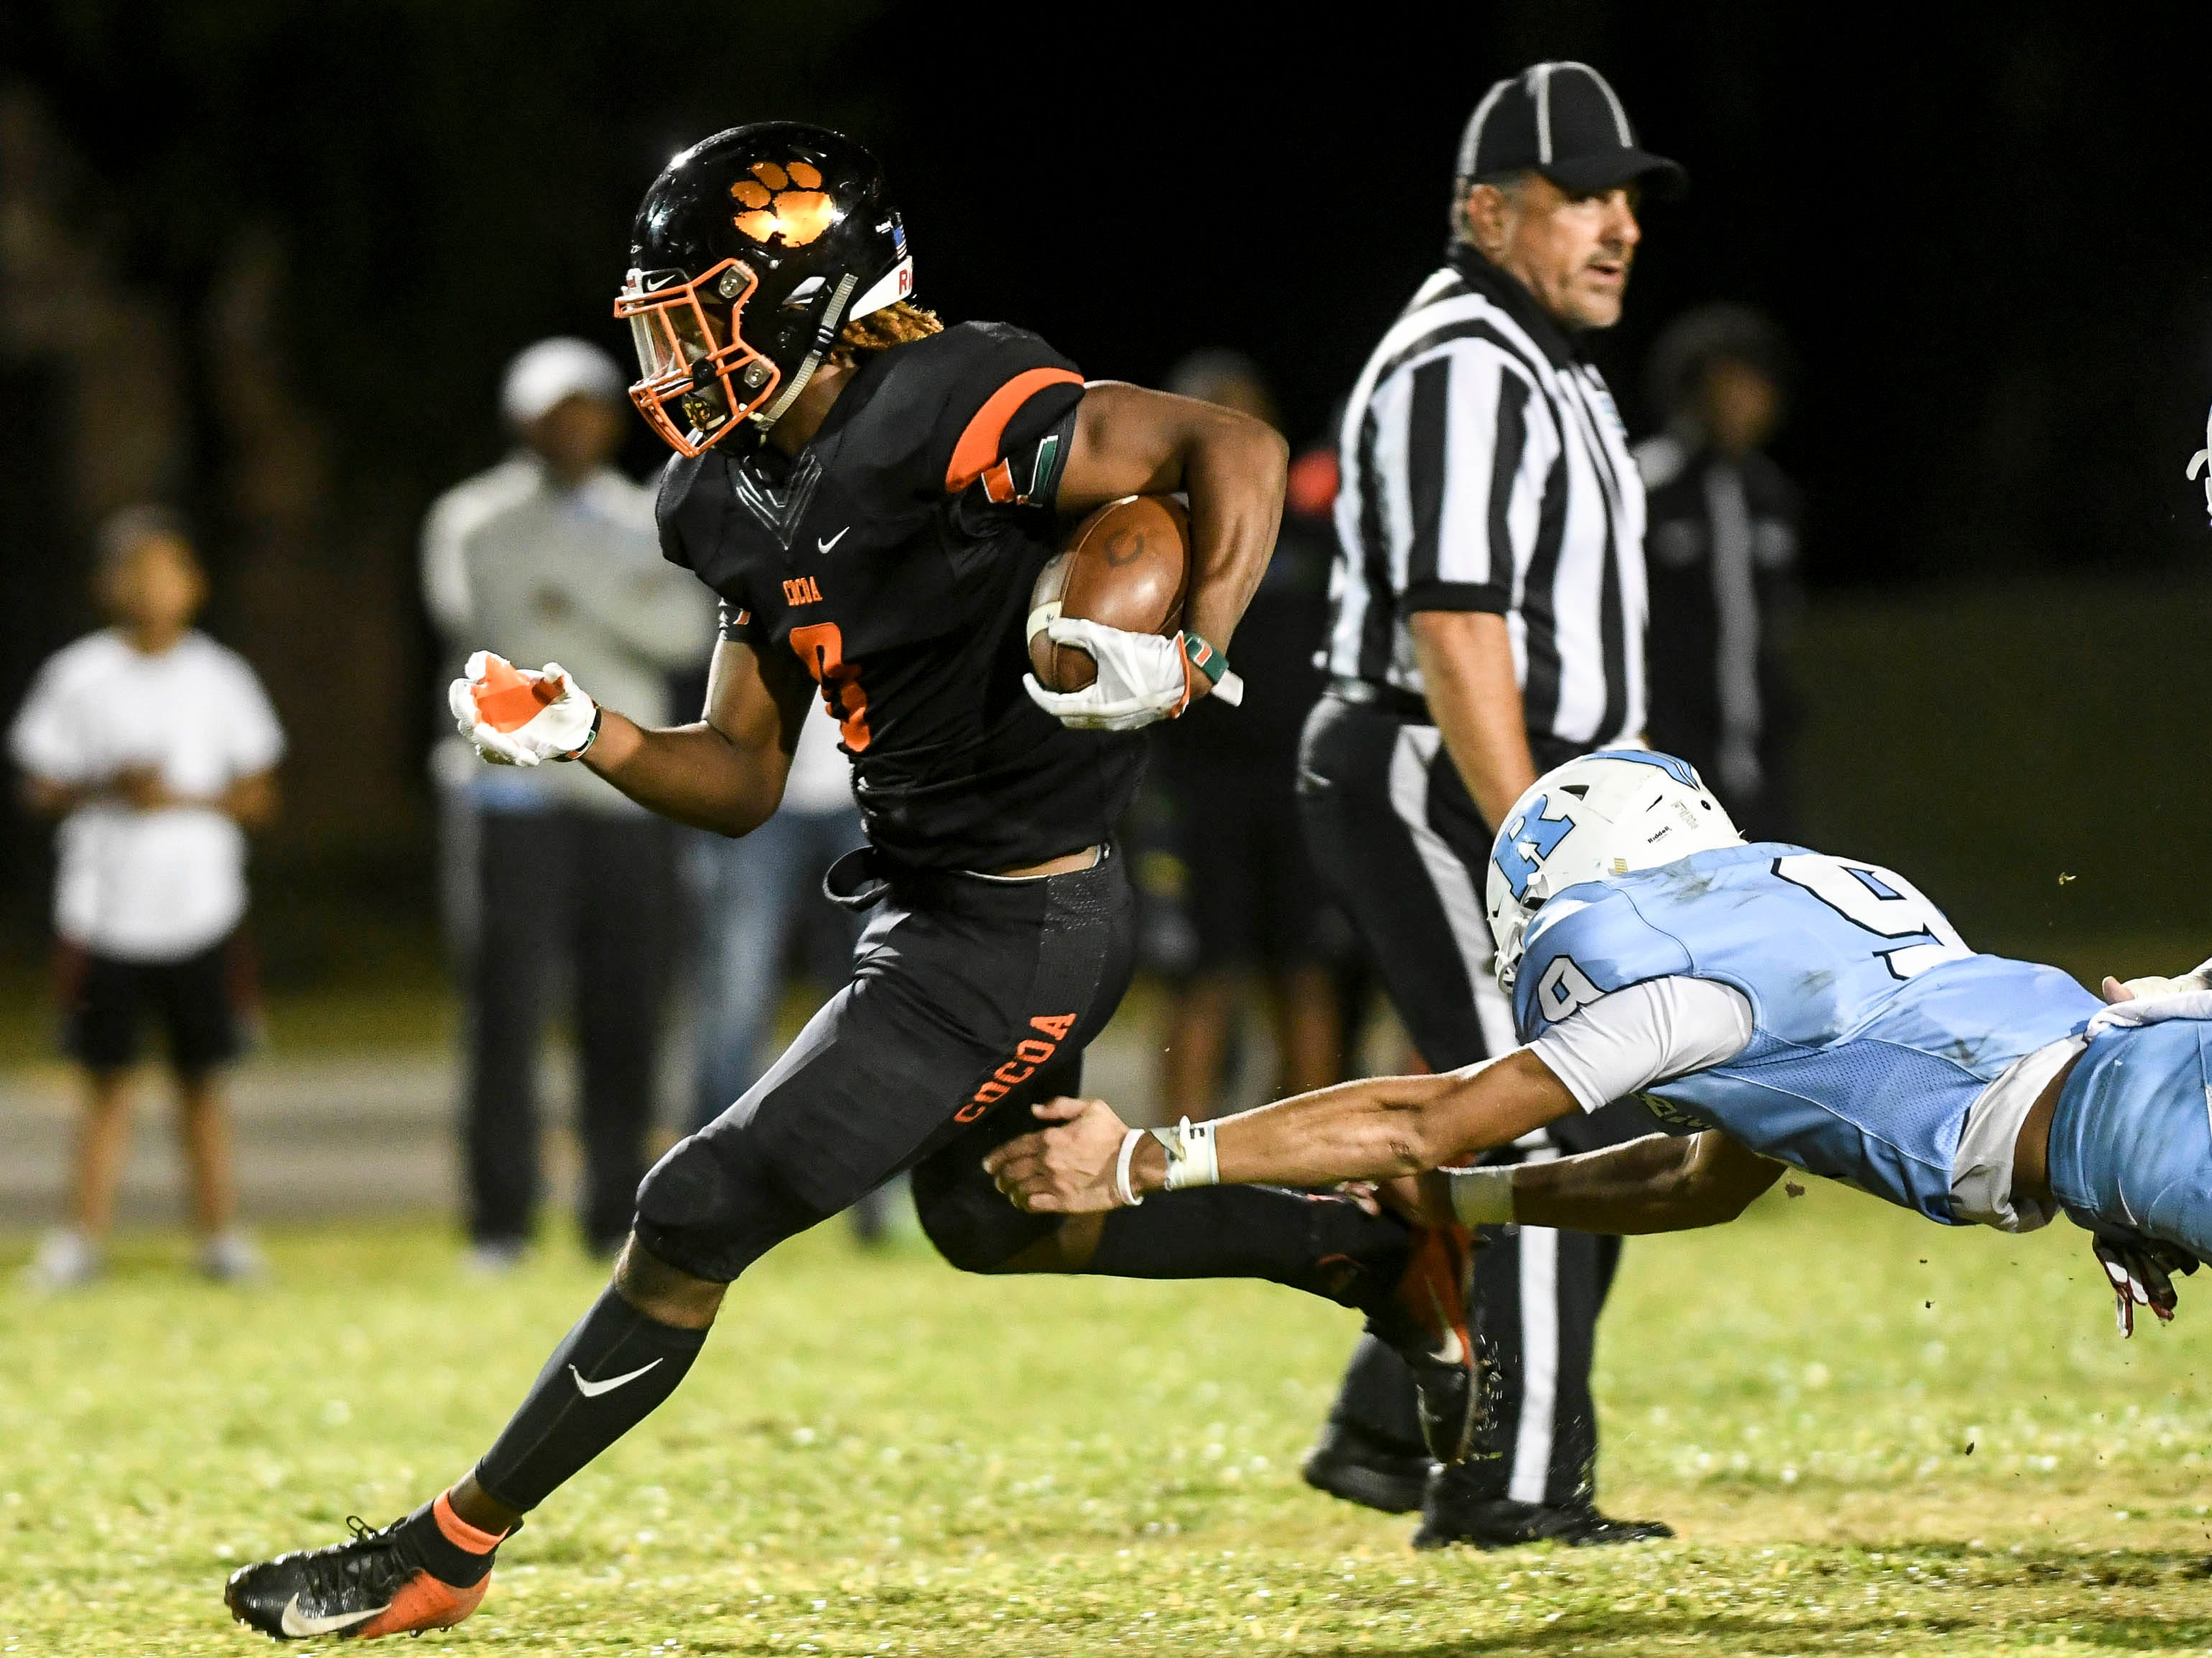 Cocoa's Caziah Holmes tries to get around the tackle of Terrance Griffin of Rockledge during Friday's game.